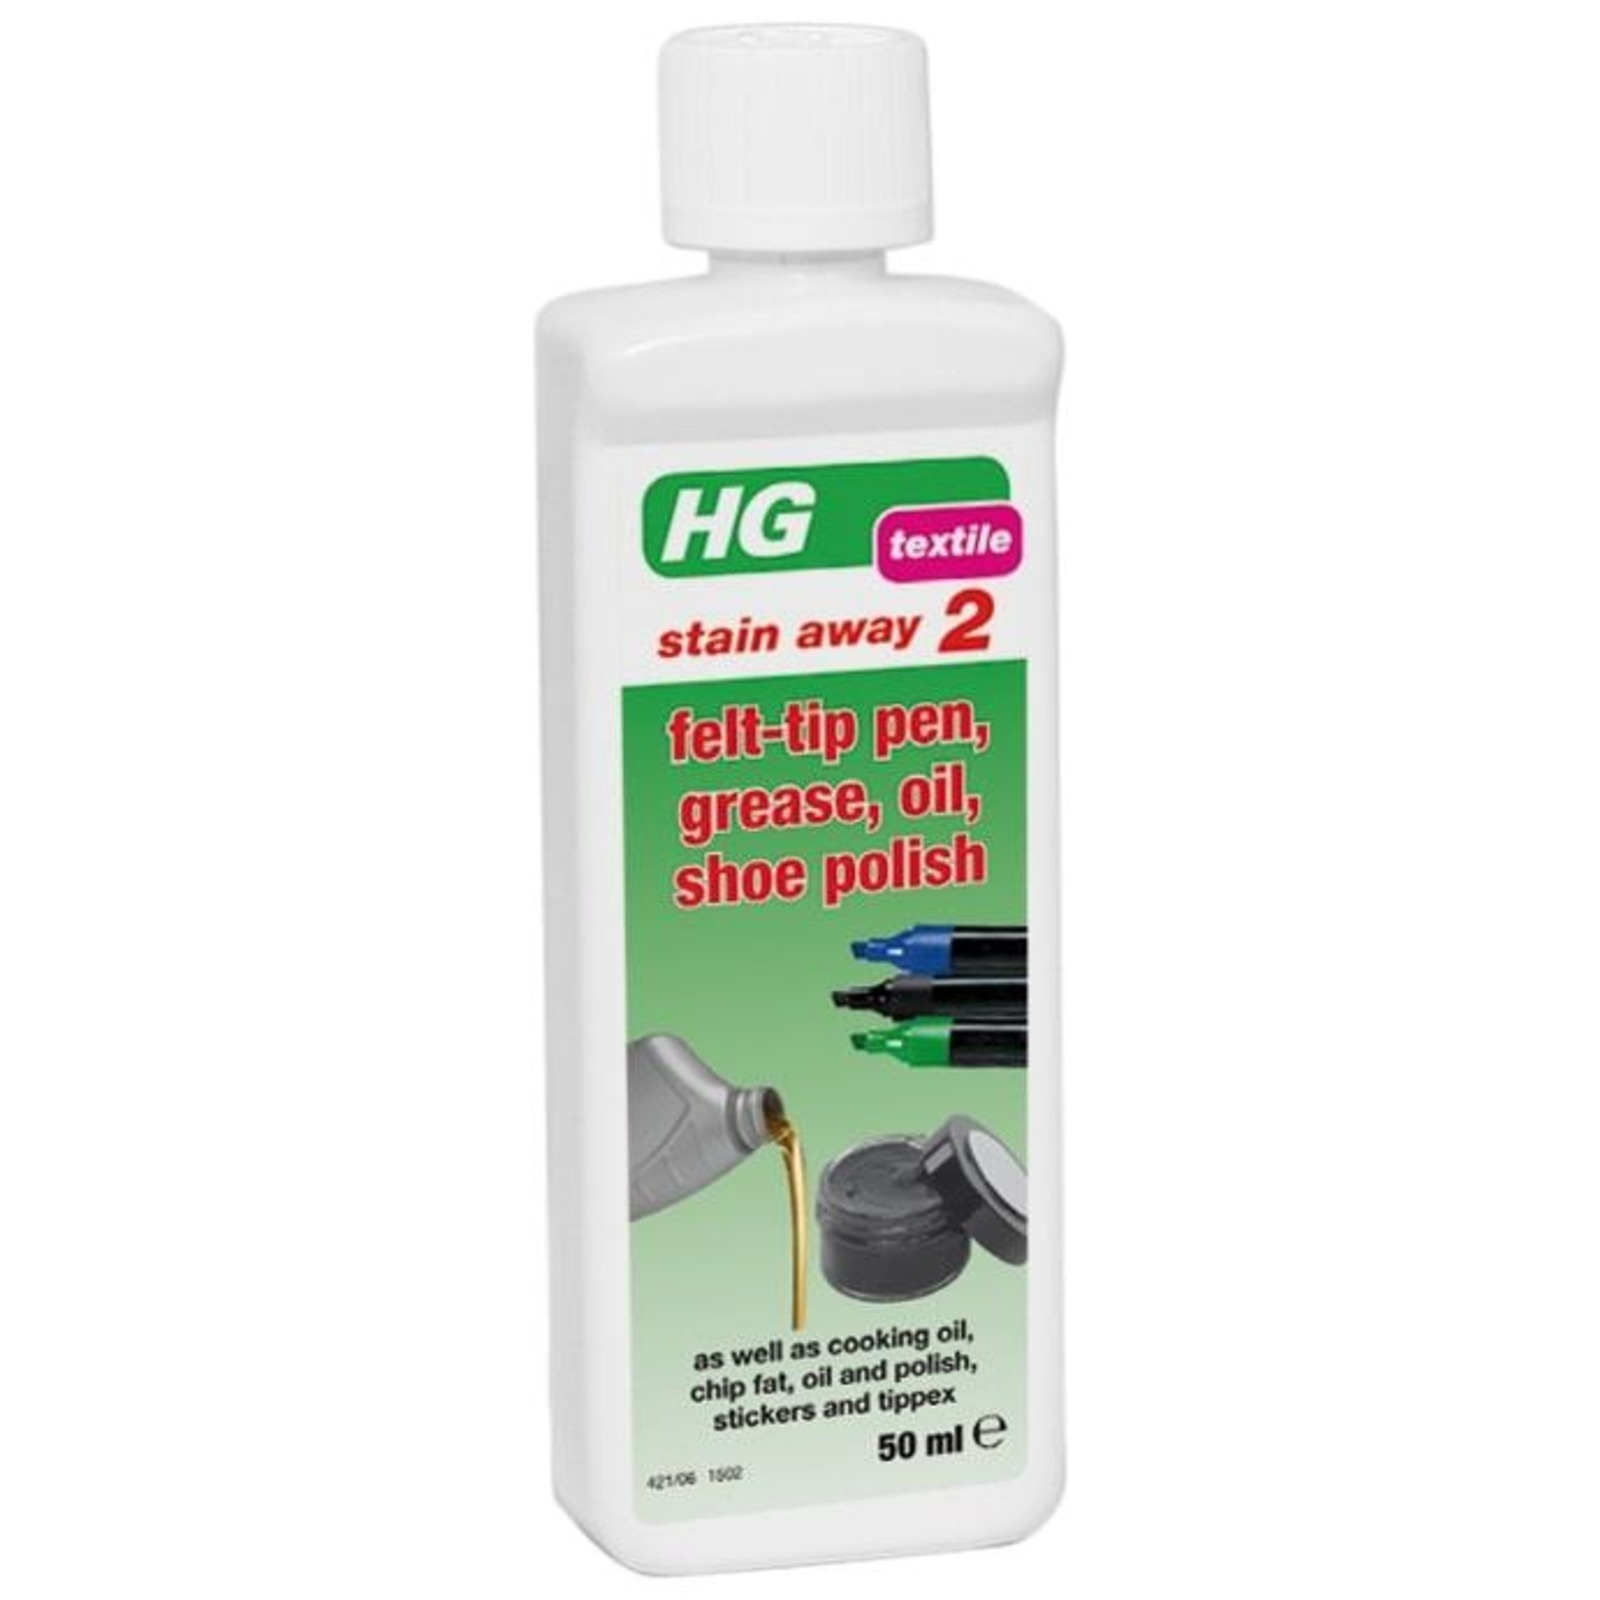 HG 421005106 STAIN AWAY NO.2